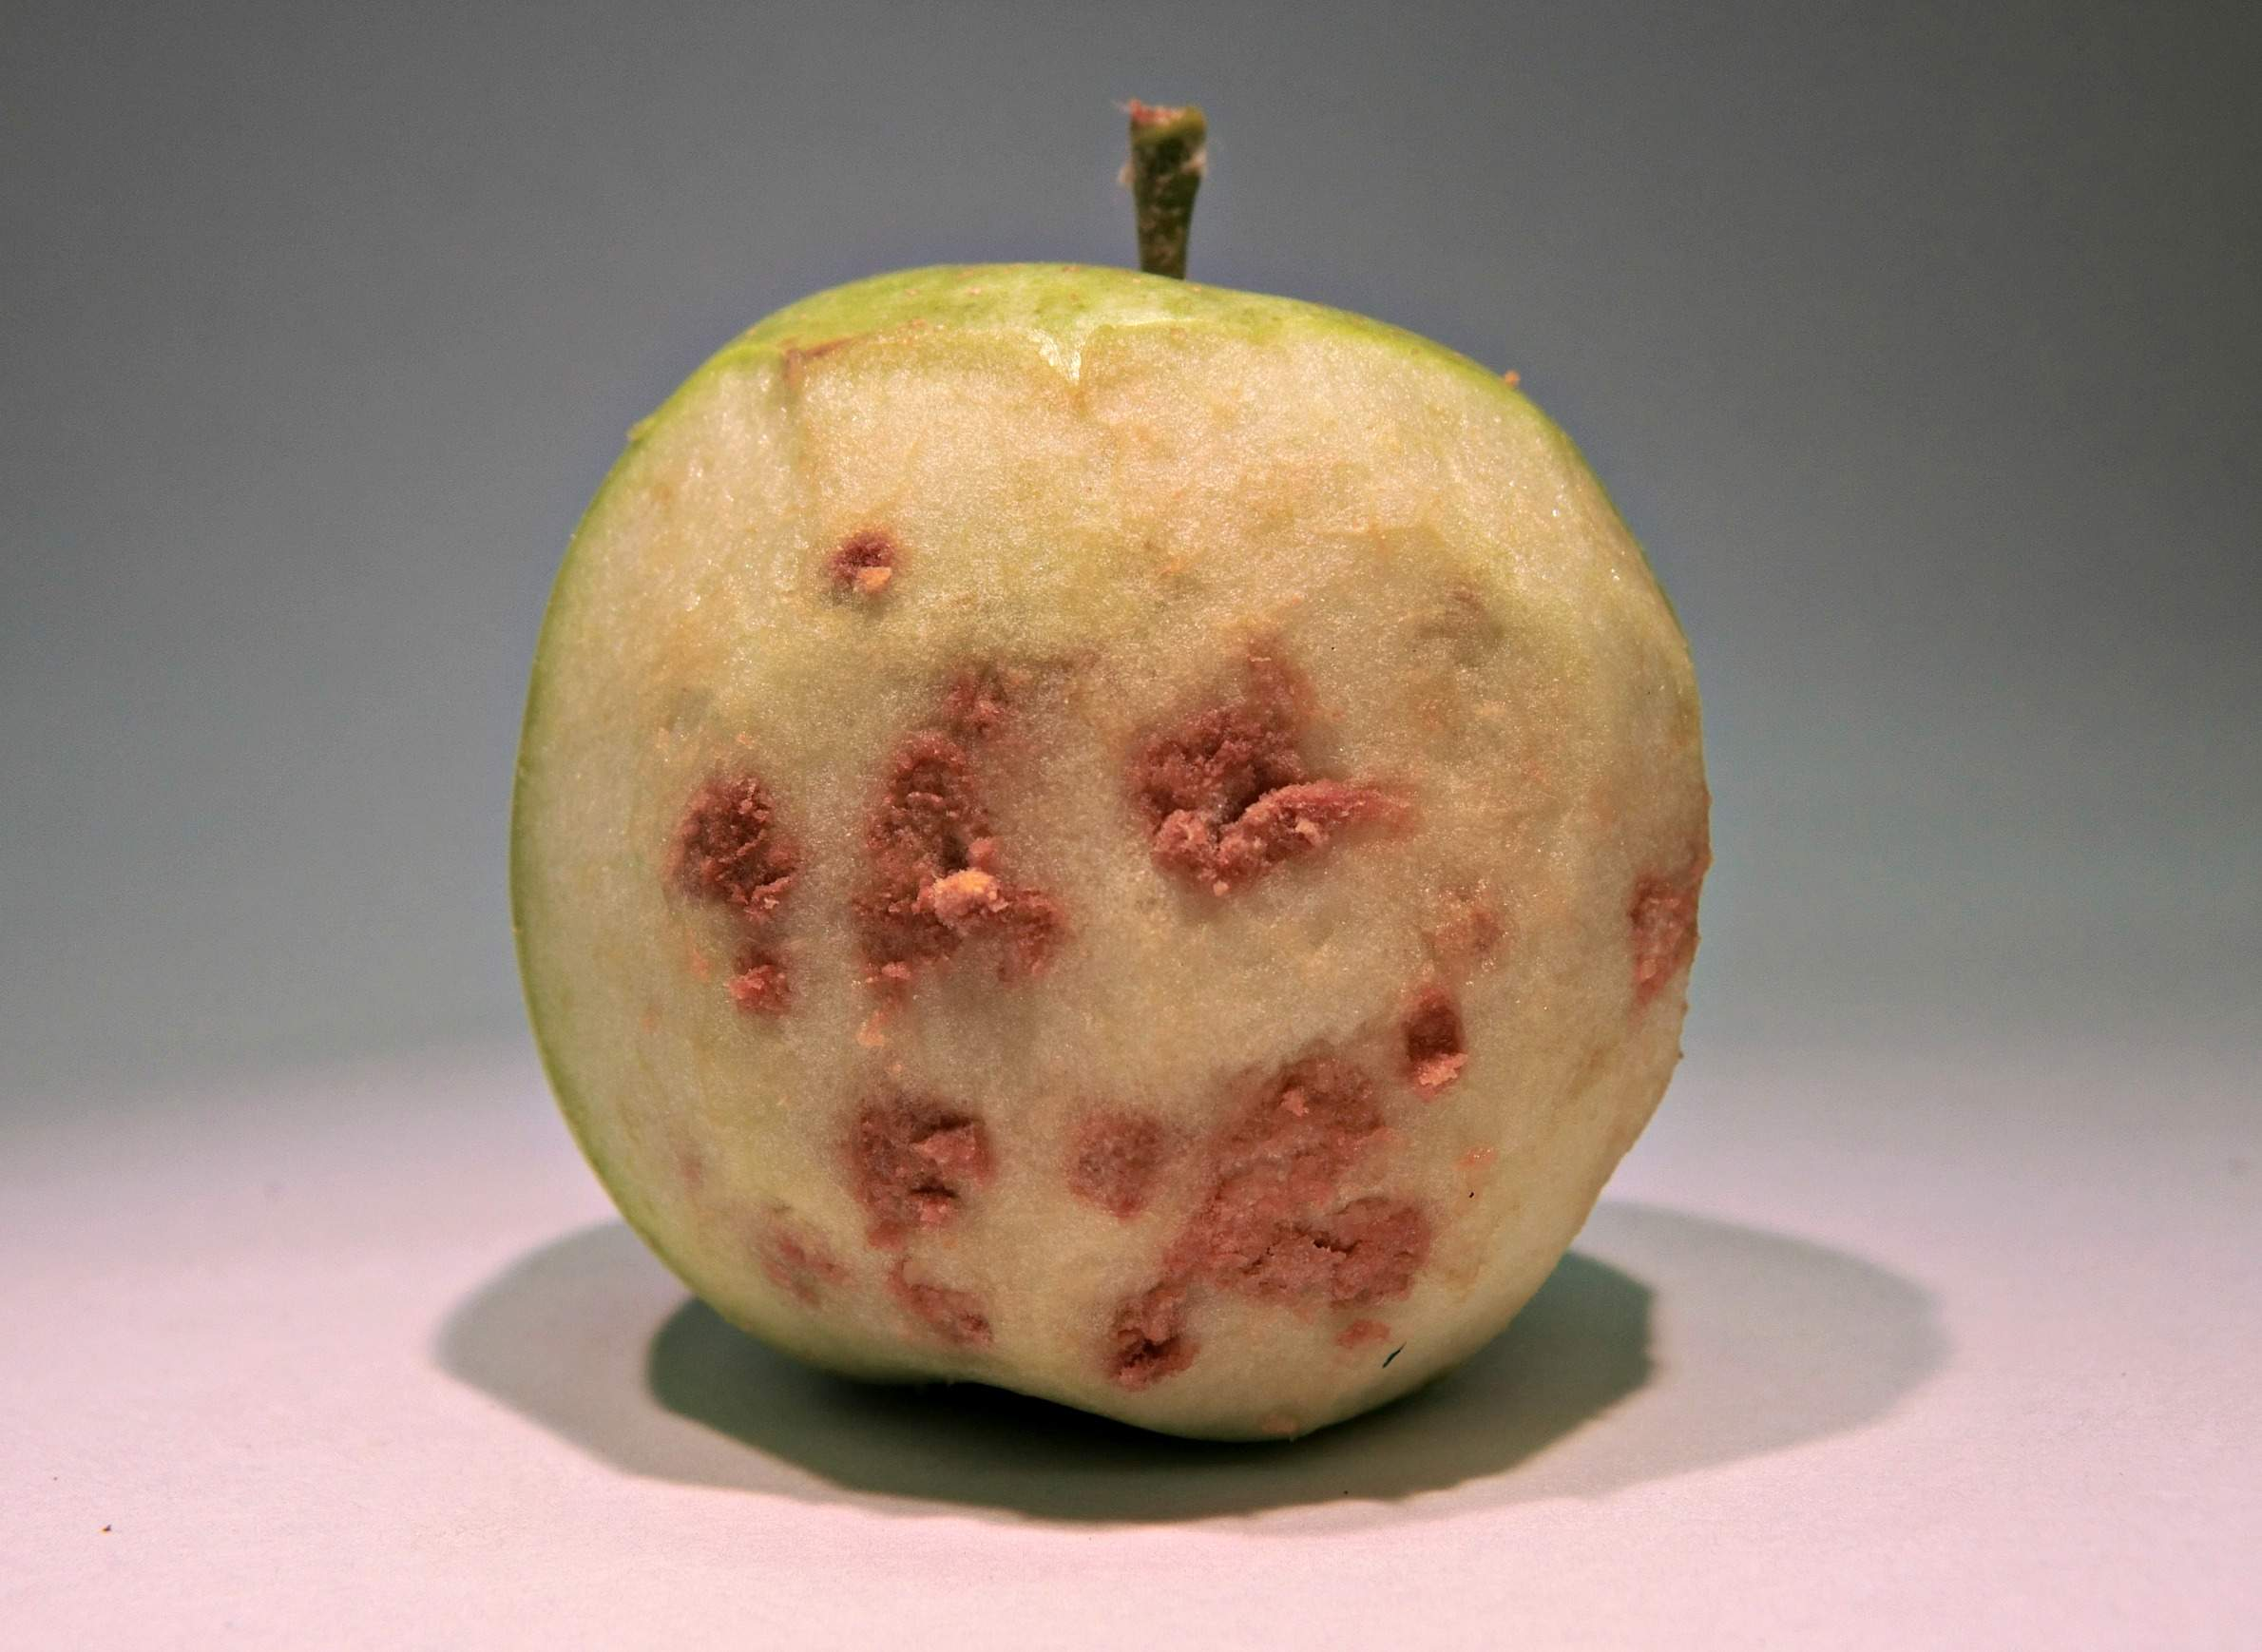 Apple showing brown marmorated stink bug damage